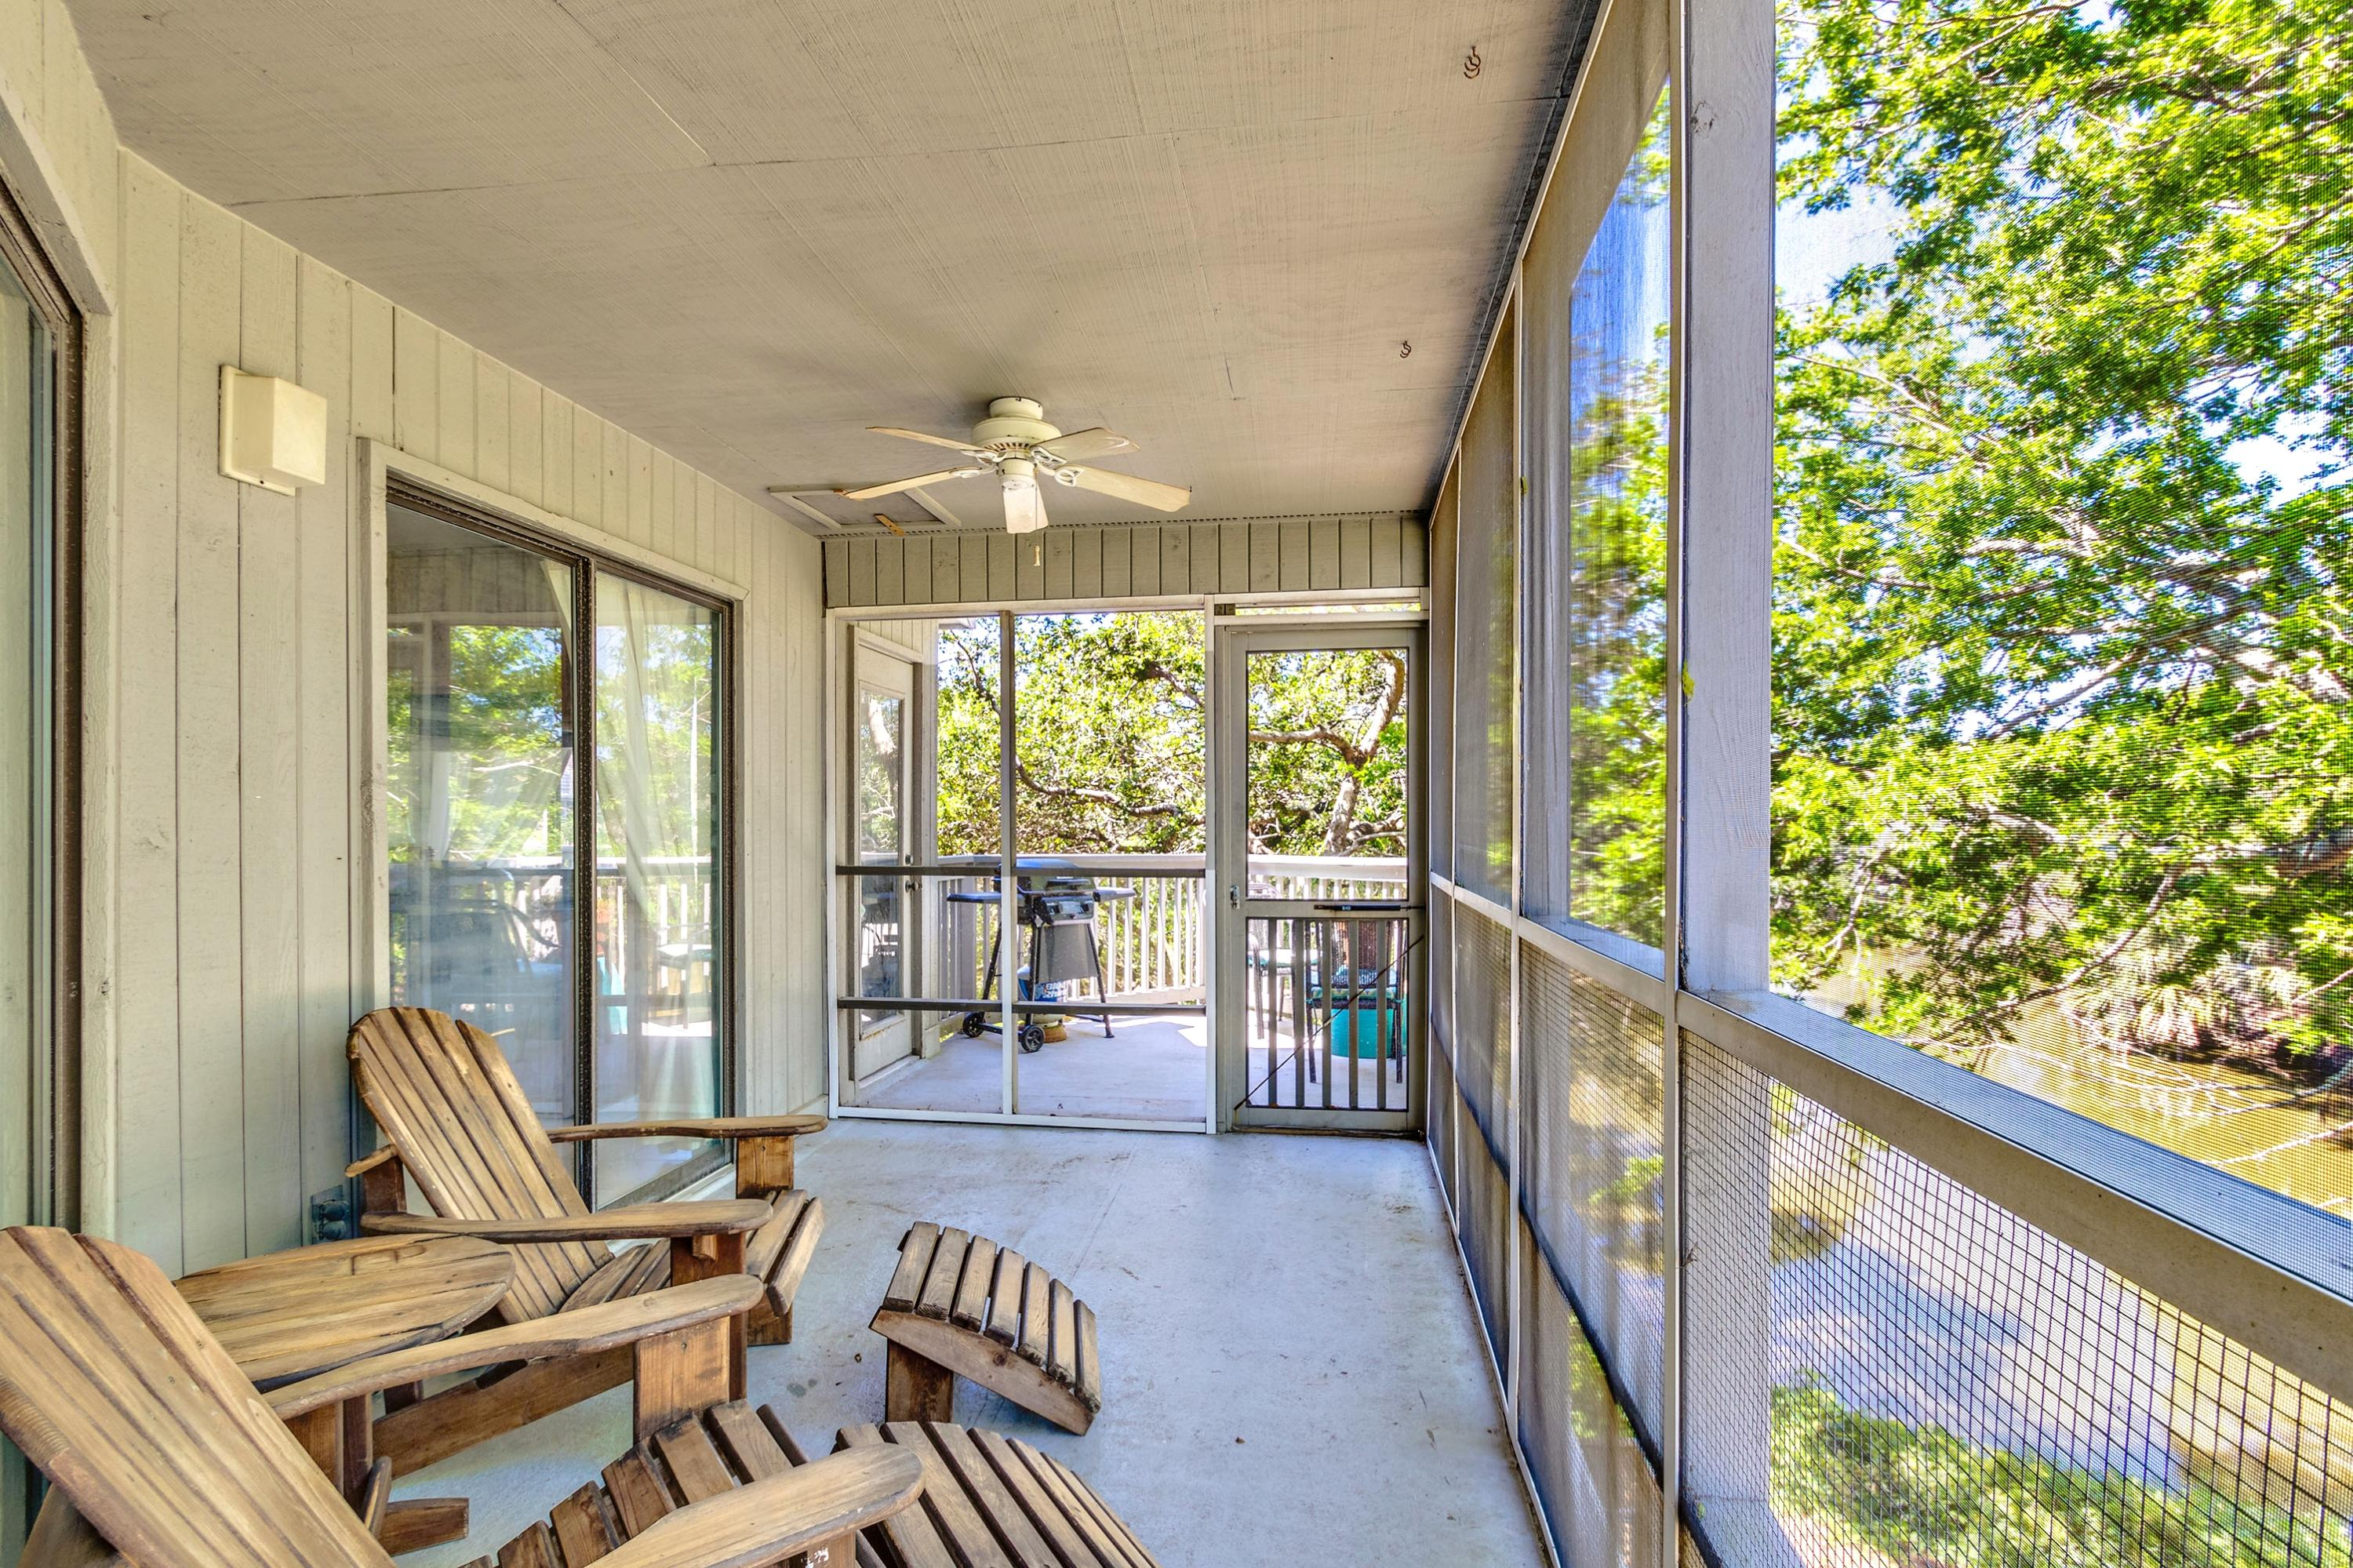 Mariners Cay Homes For Sale - 202 Mariners Cay, Folly Beach, SC - 22